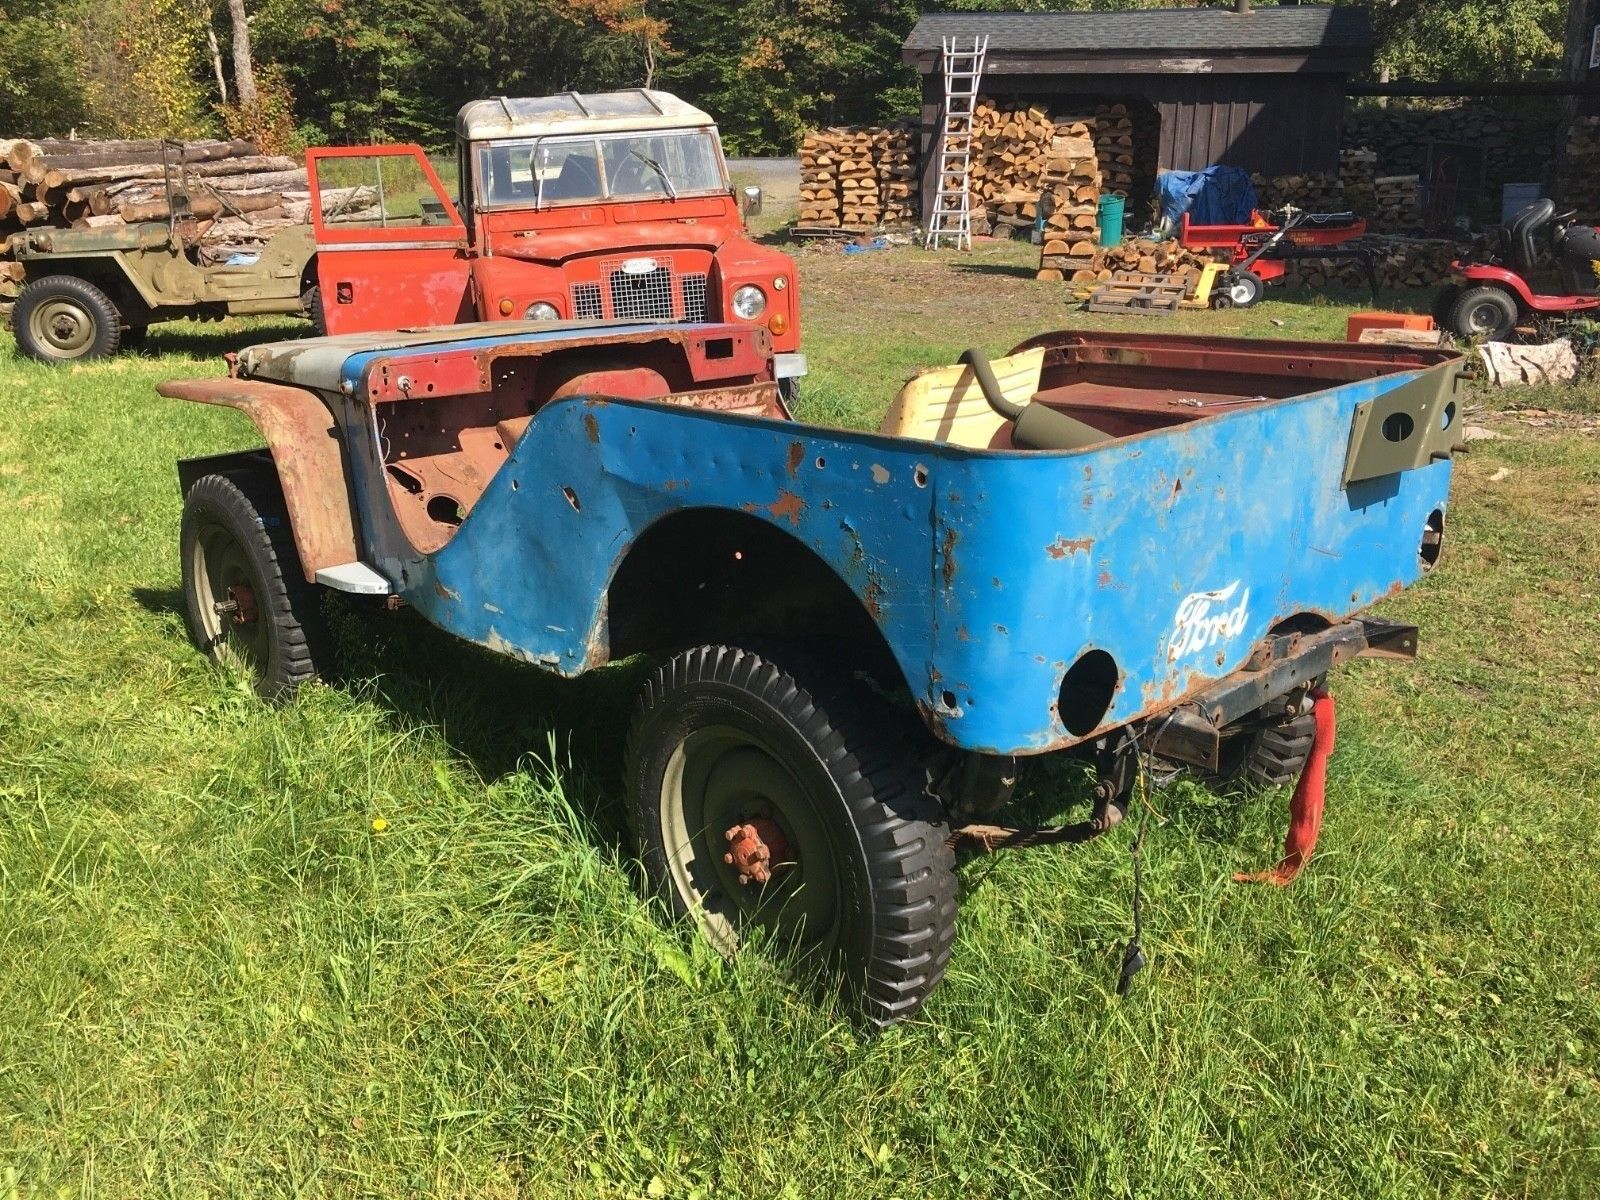 1941 Ford Gp Selkirk Ny Sold Ewillys Truck Front Fenders You Are Bidding On A Rare Prototype Jeep Known As The This Is Very Early First Series Although Incomplete It Comes With Many Parts